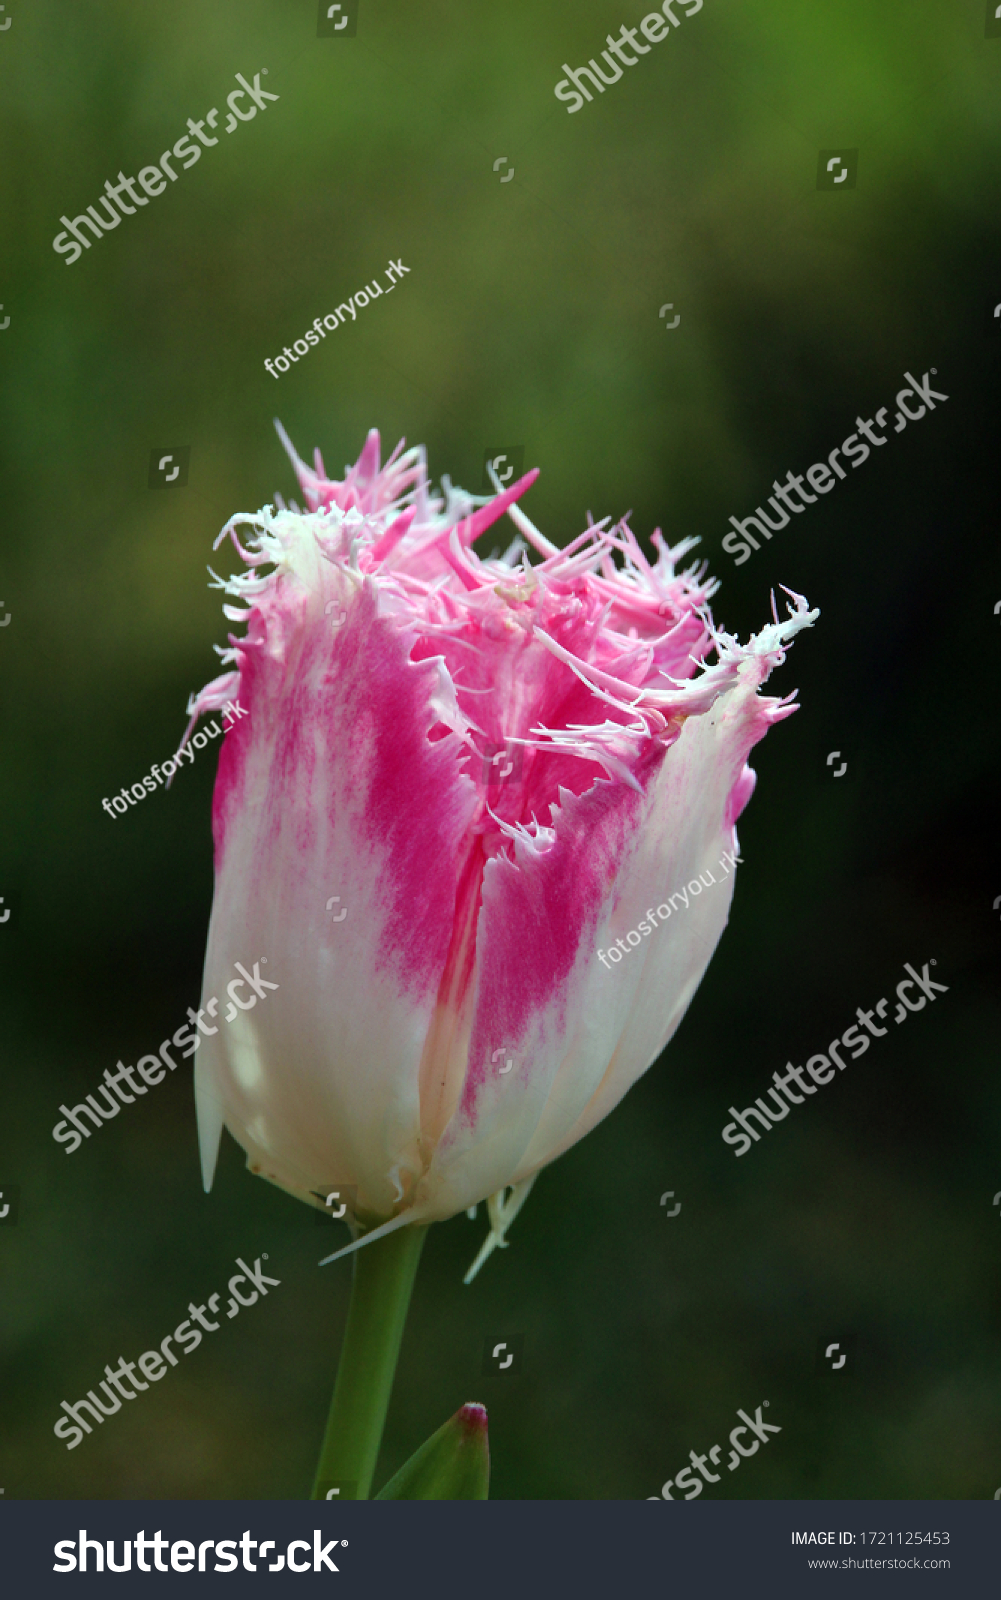 Pink white tulips as a close-up against a great background